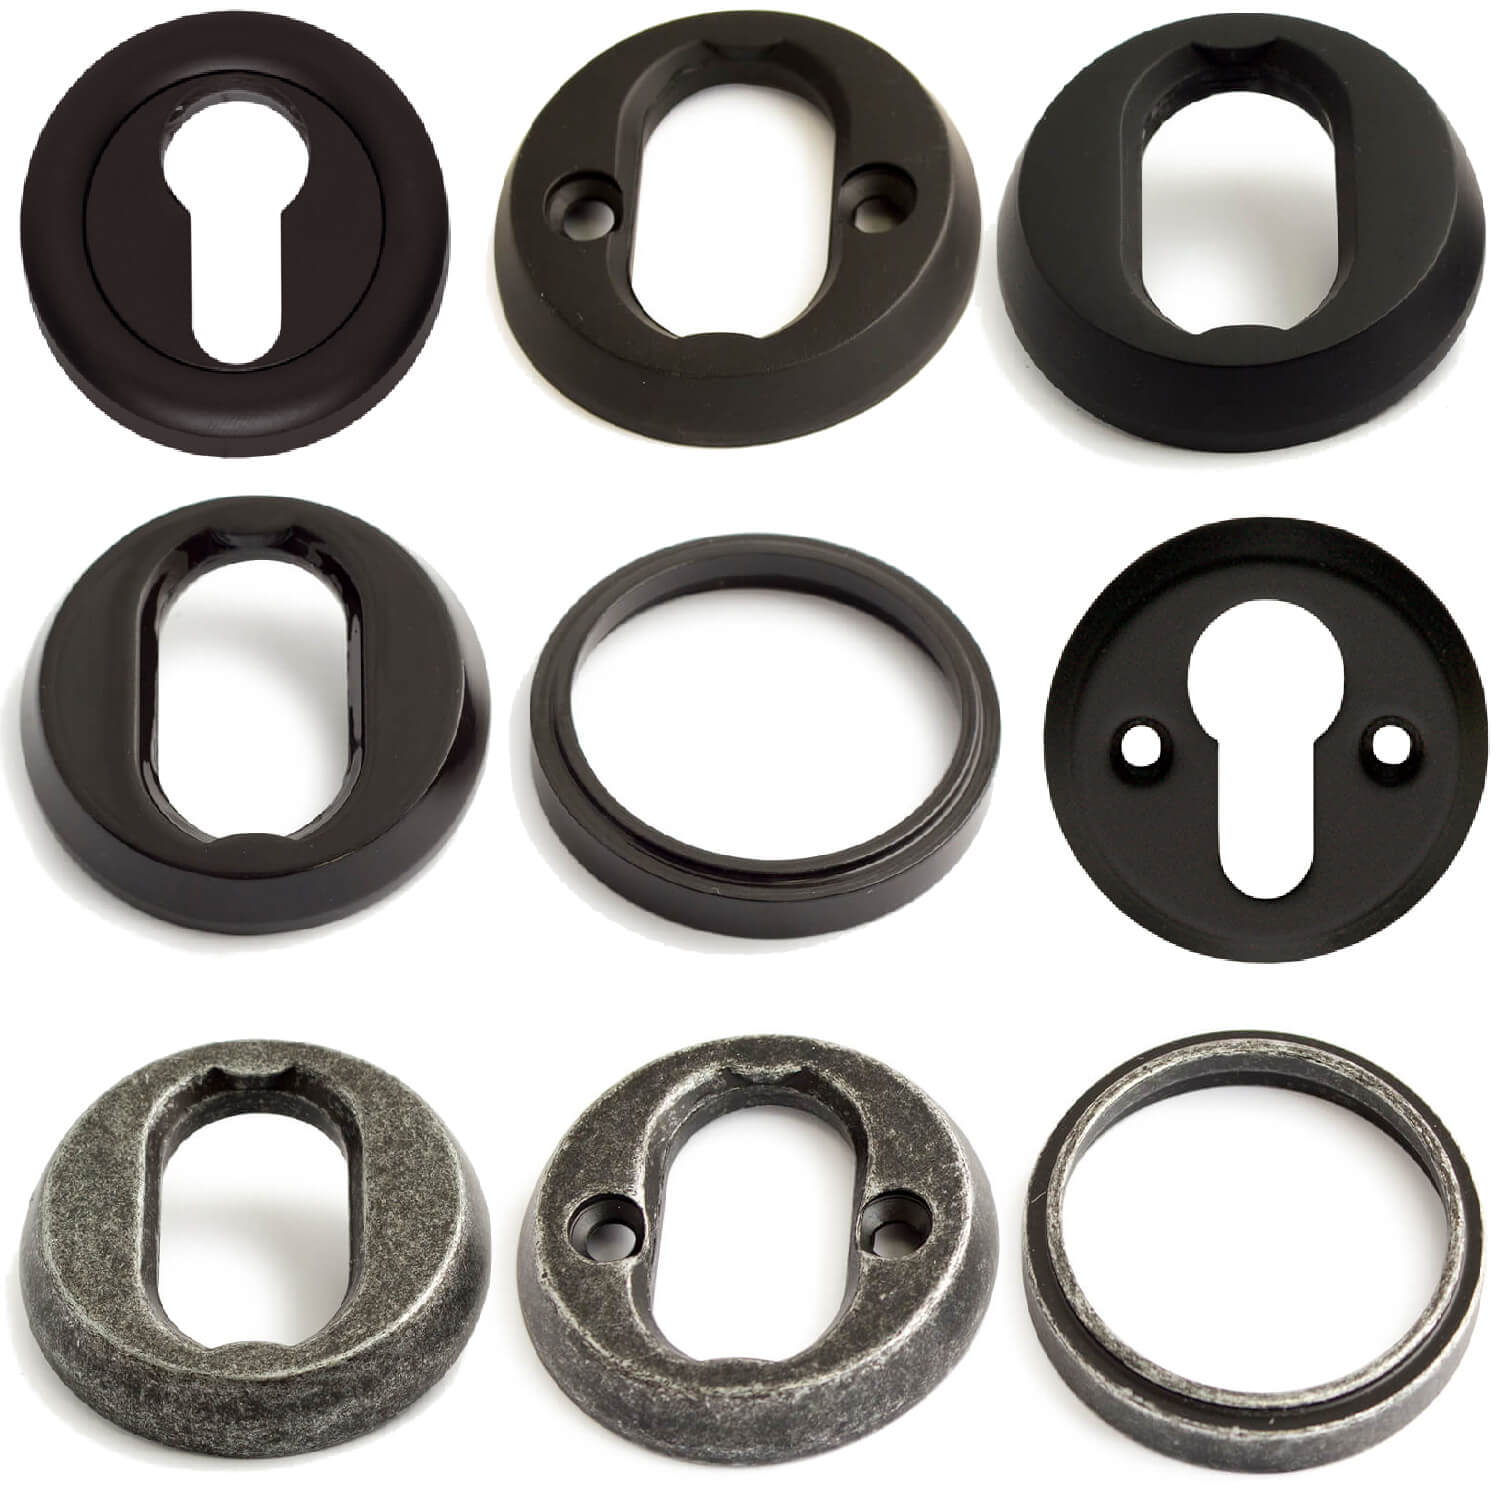 Cylinder Rings - Black / Tin